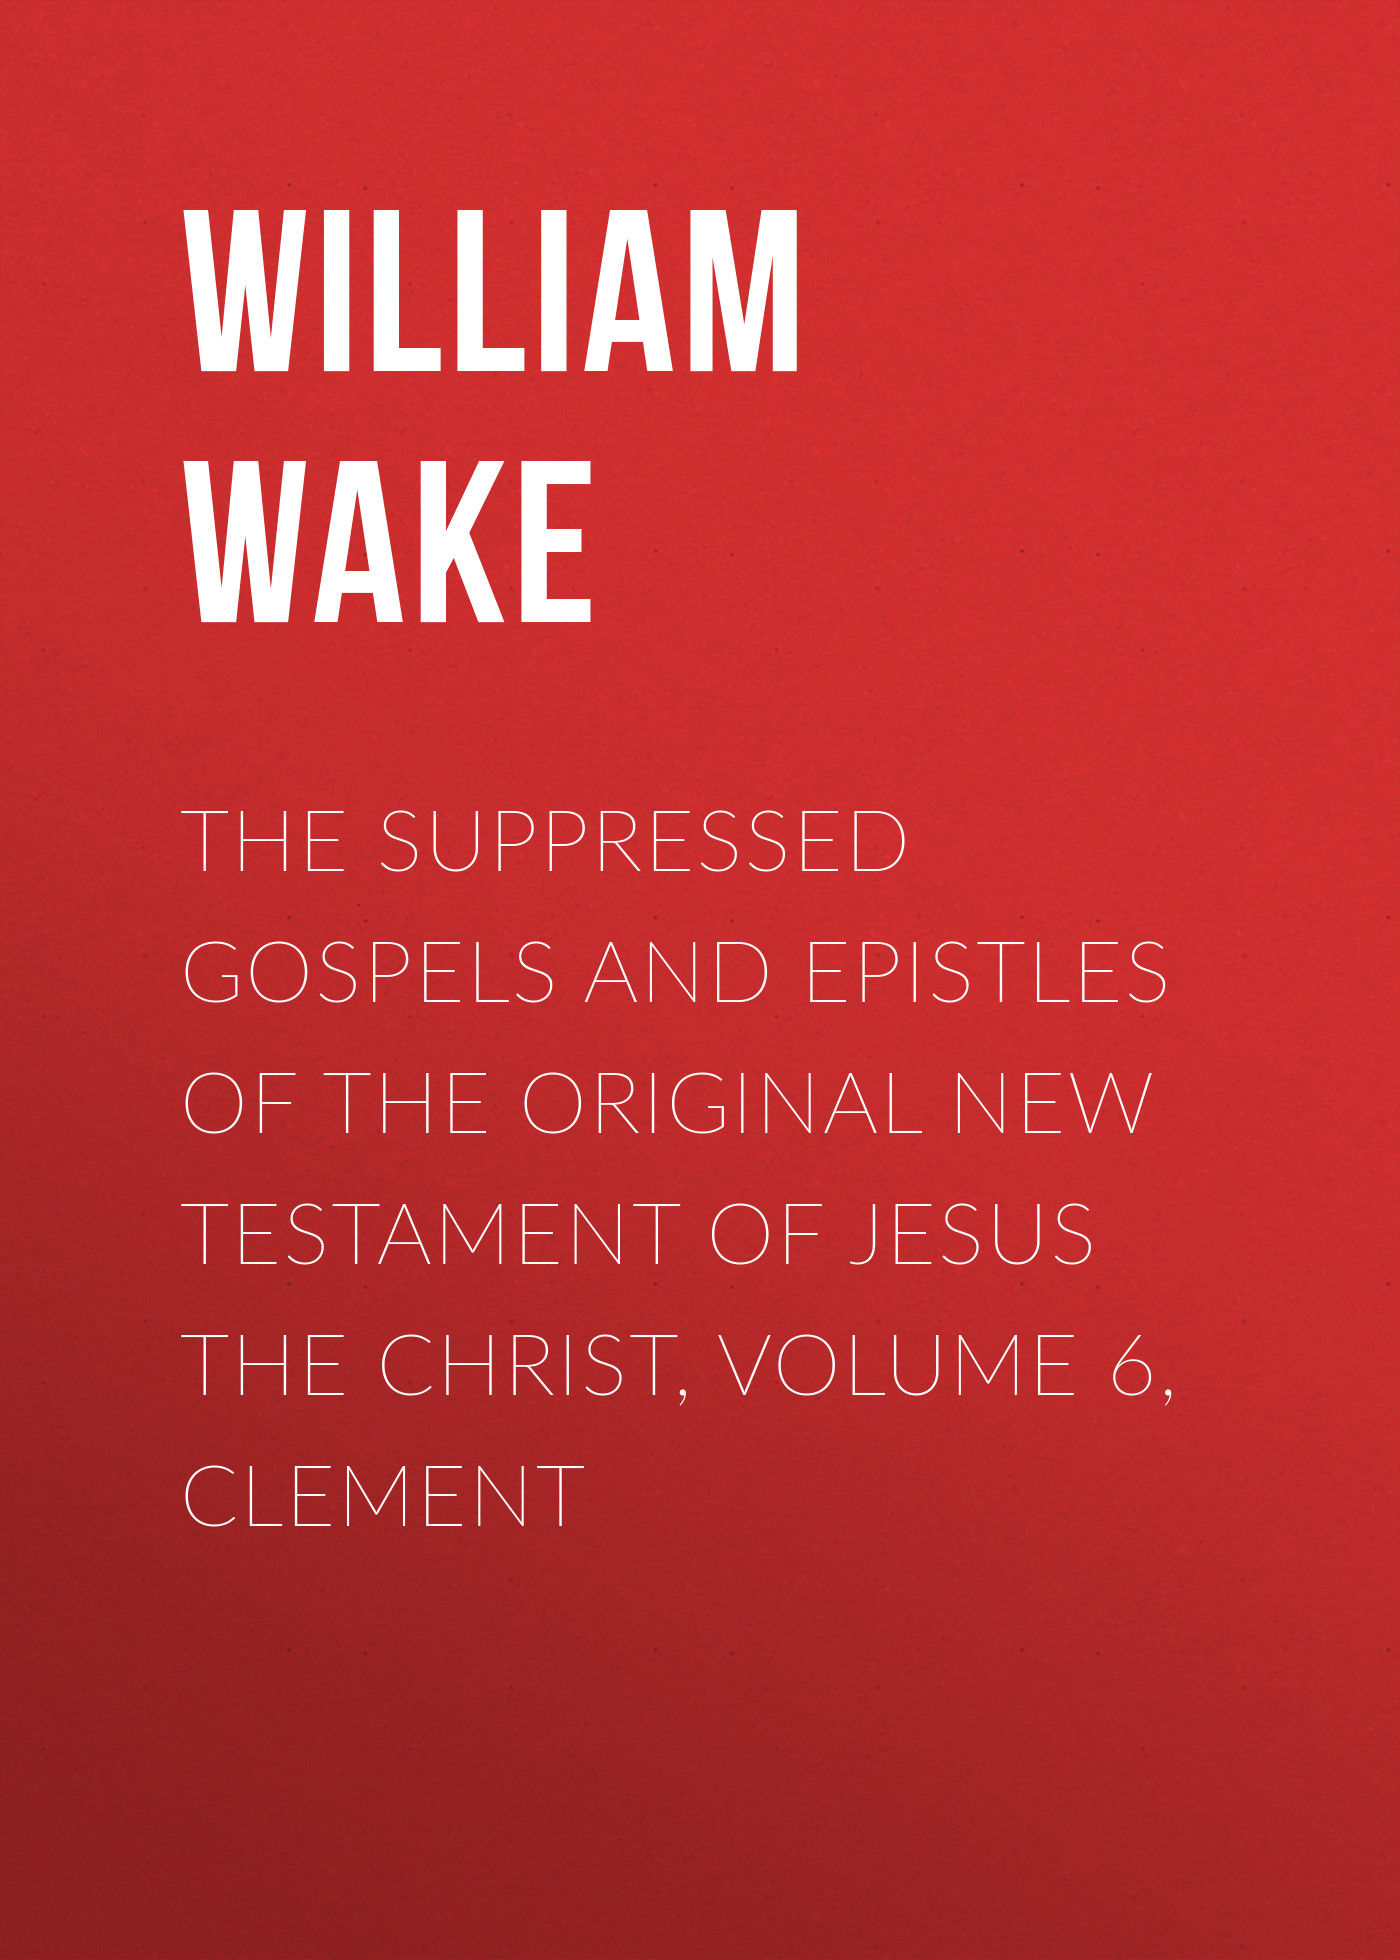 William Wake The suppressed Gospels and Epistles of the original New Testament of Jesus the Christ, Volume 6, Clement william wake the suppressed gospels and epistles of the original new testament of jesus the christ volume 3 infancy of jesus christ page 8 page 6